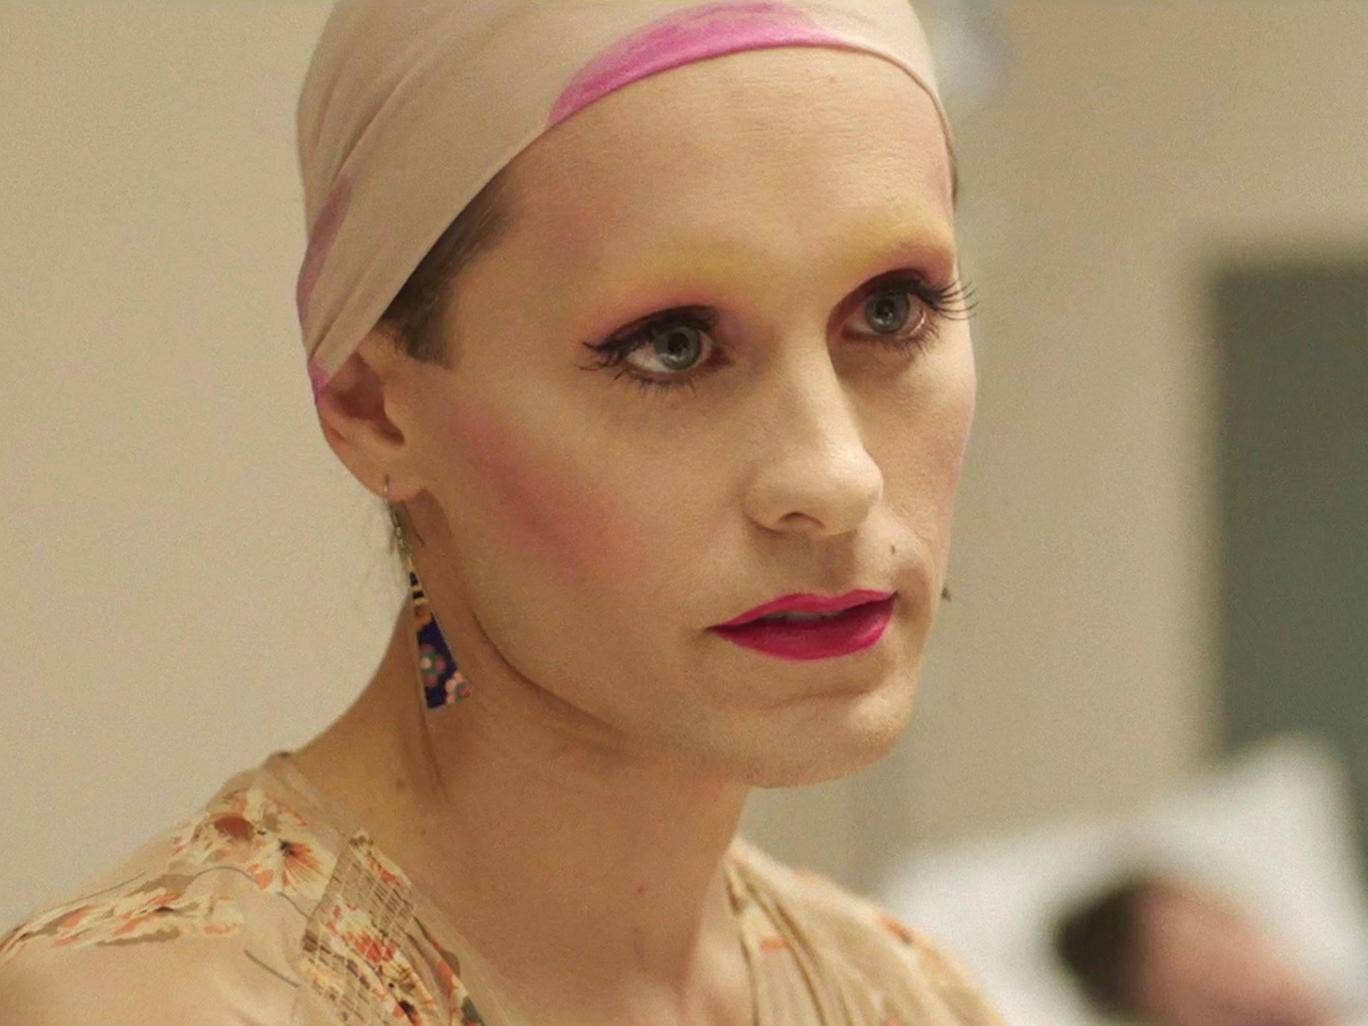 Jared Leto has been nominated for a Best Supporting Actor Oscar for his role as Rayon in Dallas Buyers Club